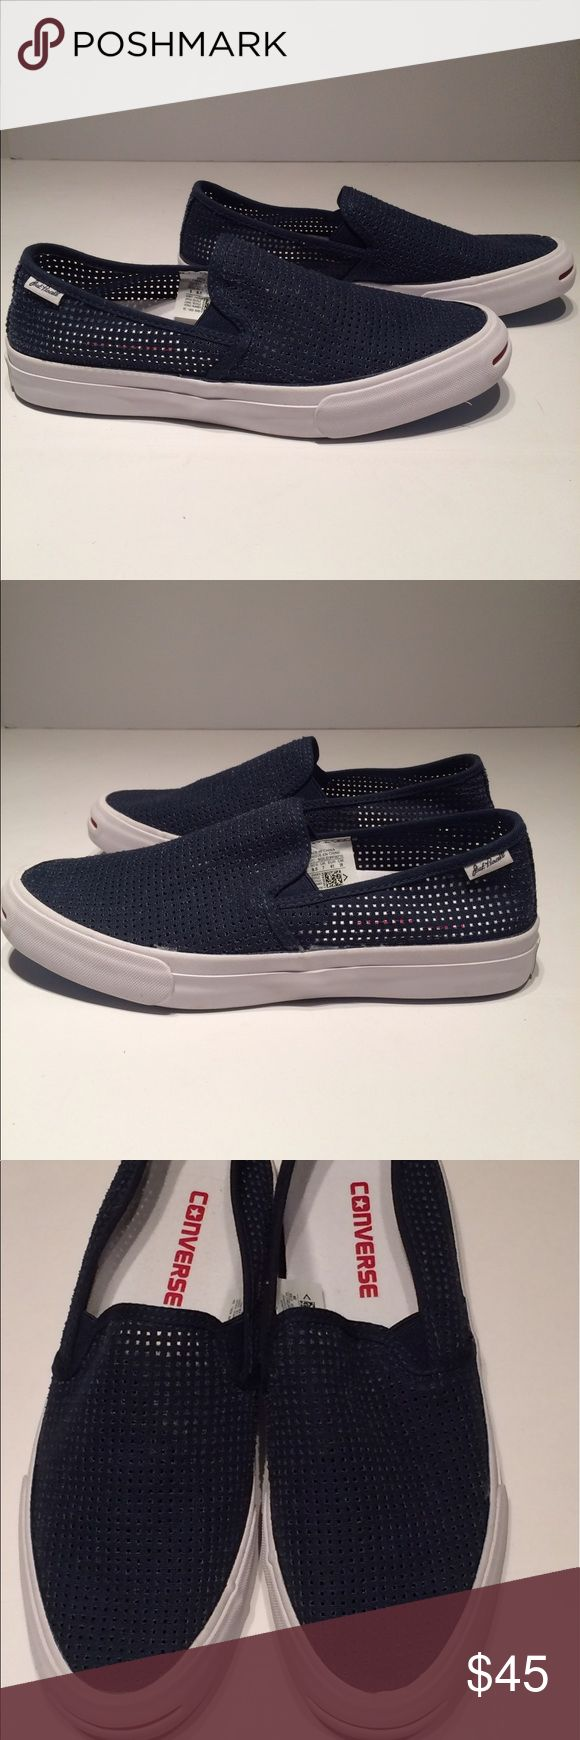 Converse JACK PURCELL JP II Slip On It's summertime... it's to hot, for tying laces, and you have places to be!  Slip these on to match with anything, from your best dress shorts to your favorite swim trunks, and everything in between! These even go great with a pair of khakis for those events where shorts won't cut it! Converse Shoes Loafers & Slip-Ons